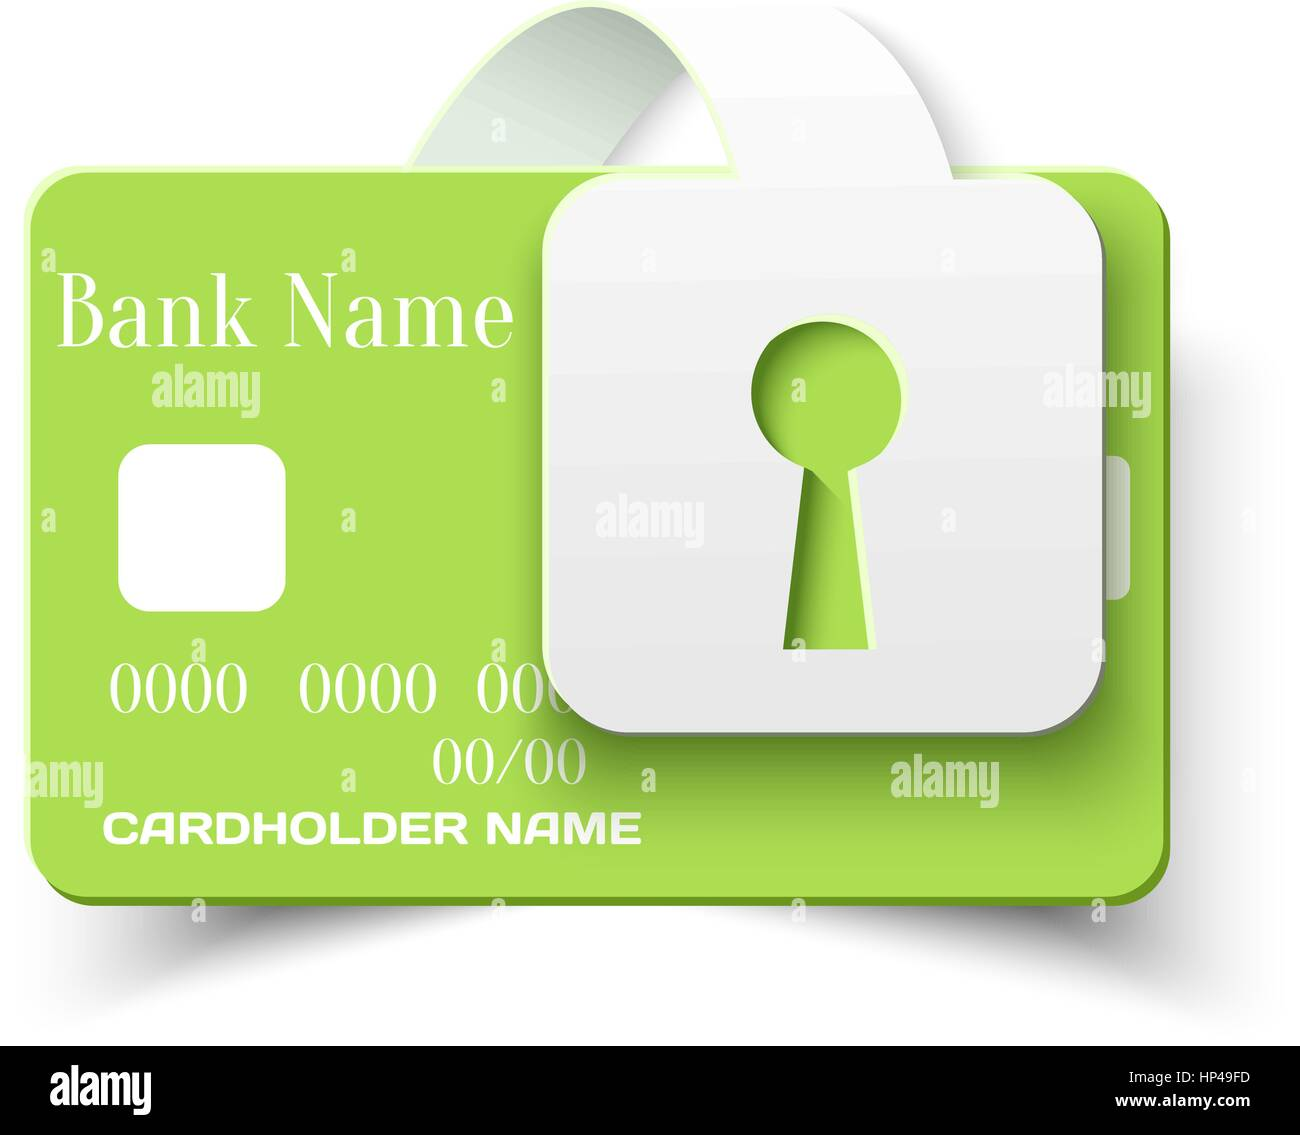 Secure Payment Icon Flat Design Stockfotos & Secure Payment Icon ...